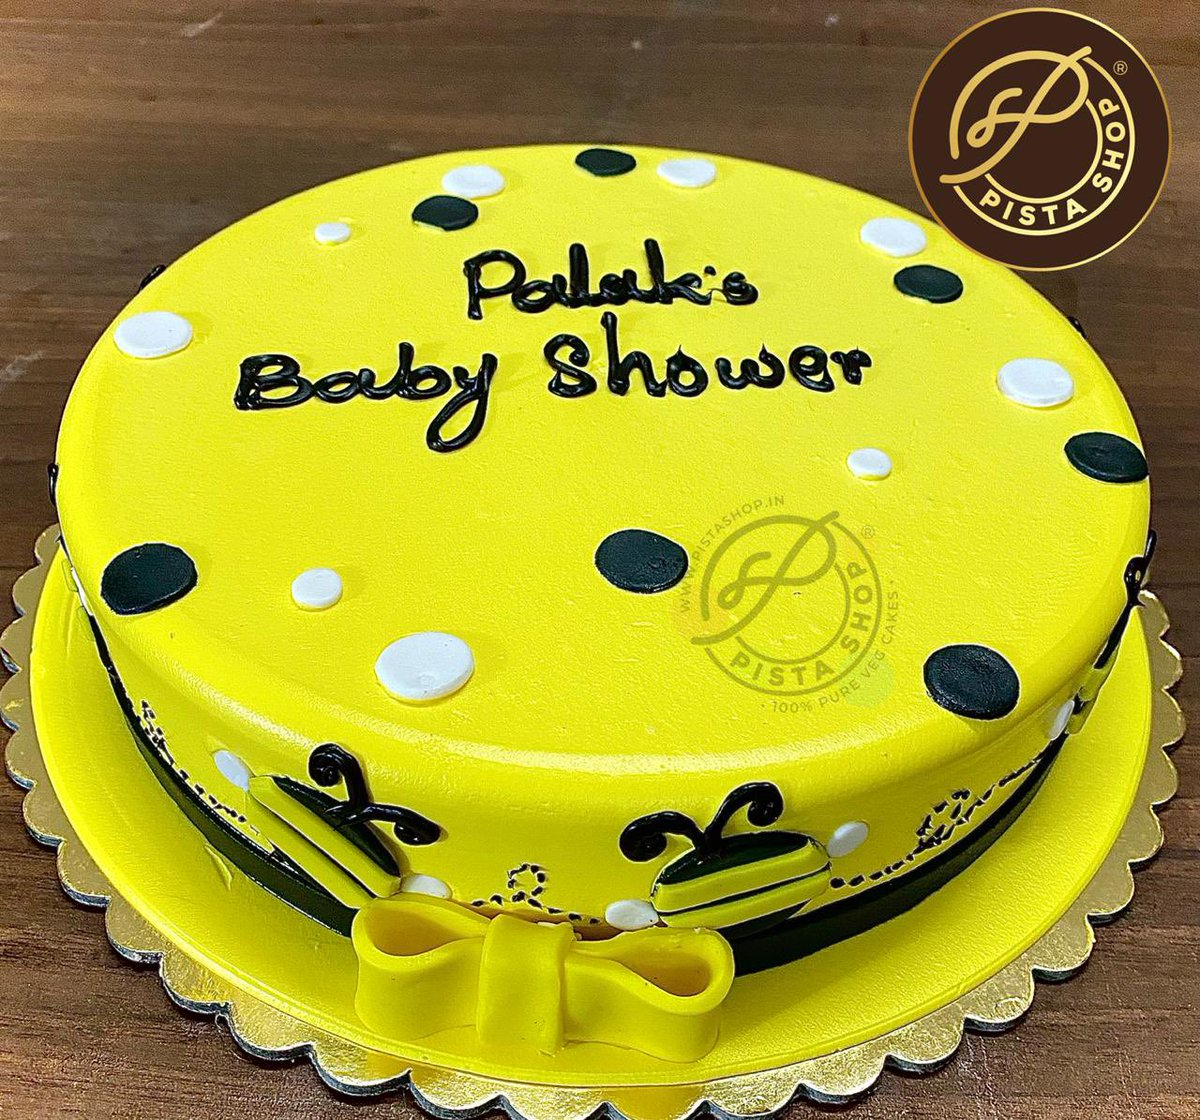 A special cake for a special occasion. Call now for more details.  #babyshowercake #babyiscoming #heorshe #joy #preciousmoment #loveforbaby #soontobemom #motherslife #baby #babyboy #babygirl #couplegoals  #cakecakecake #foodbloggers #yavatmalfoodies #yavatmal #pistashopyavatmal